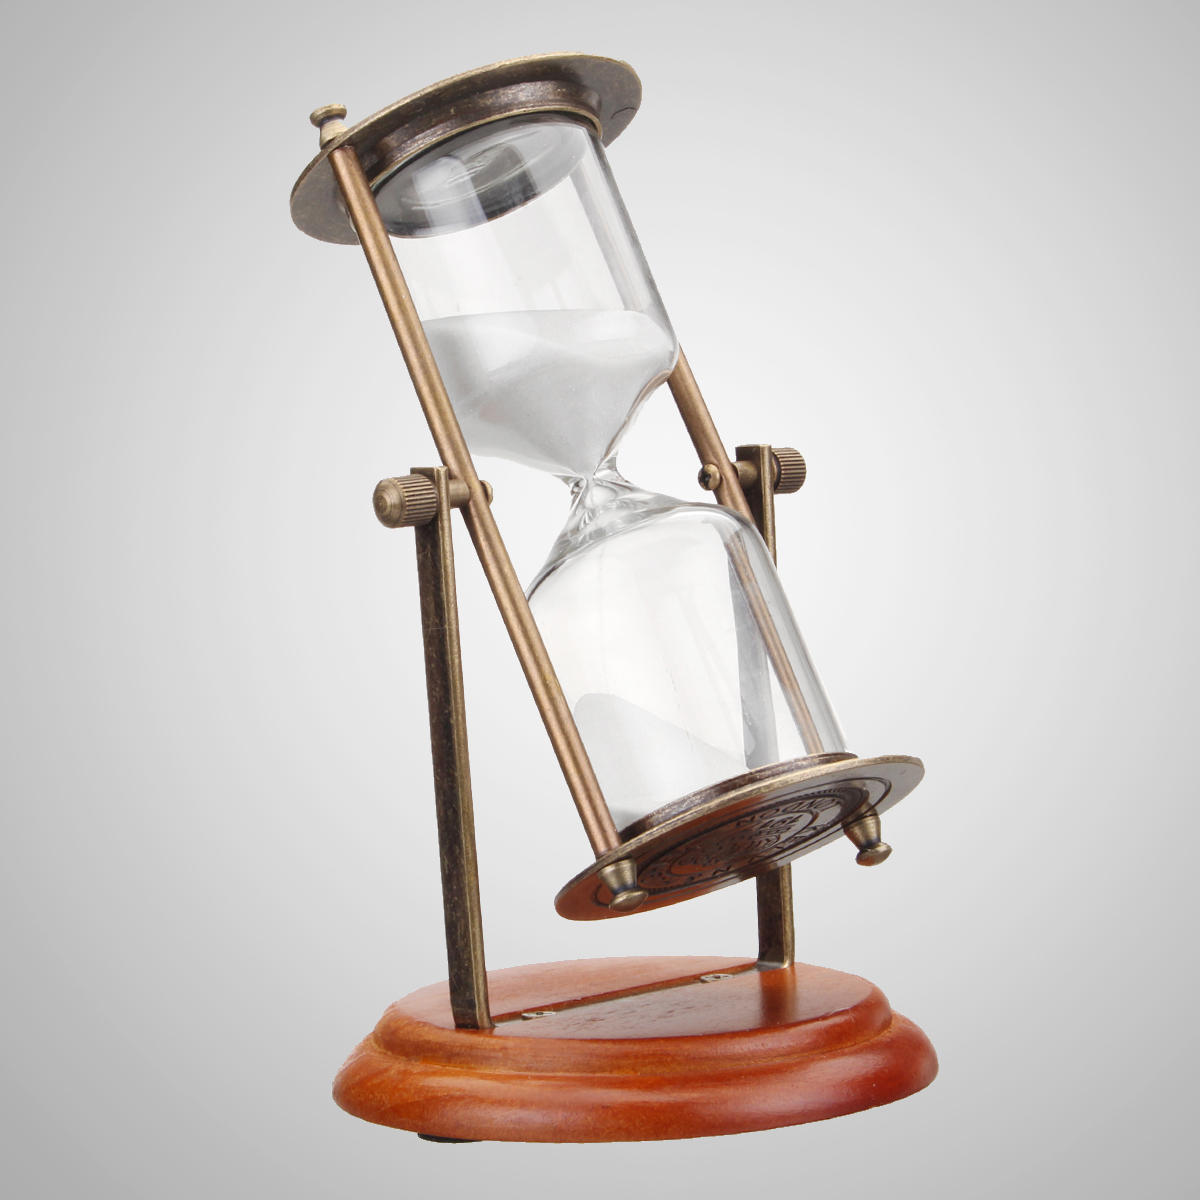 15 Minutes Rolating Hourglass Sandglass Sand Clock Timer Table Home Decoration Desktop Ornament - 5